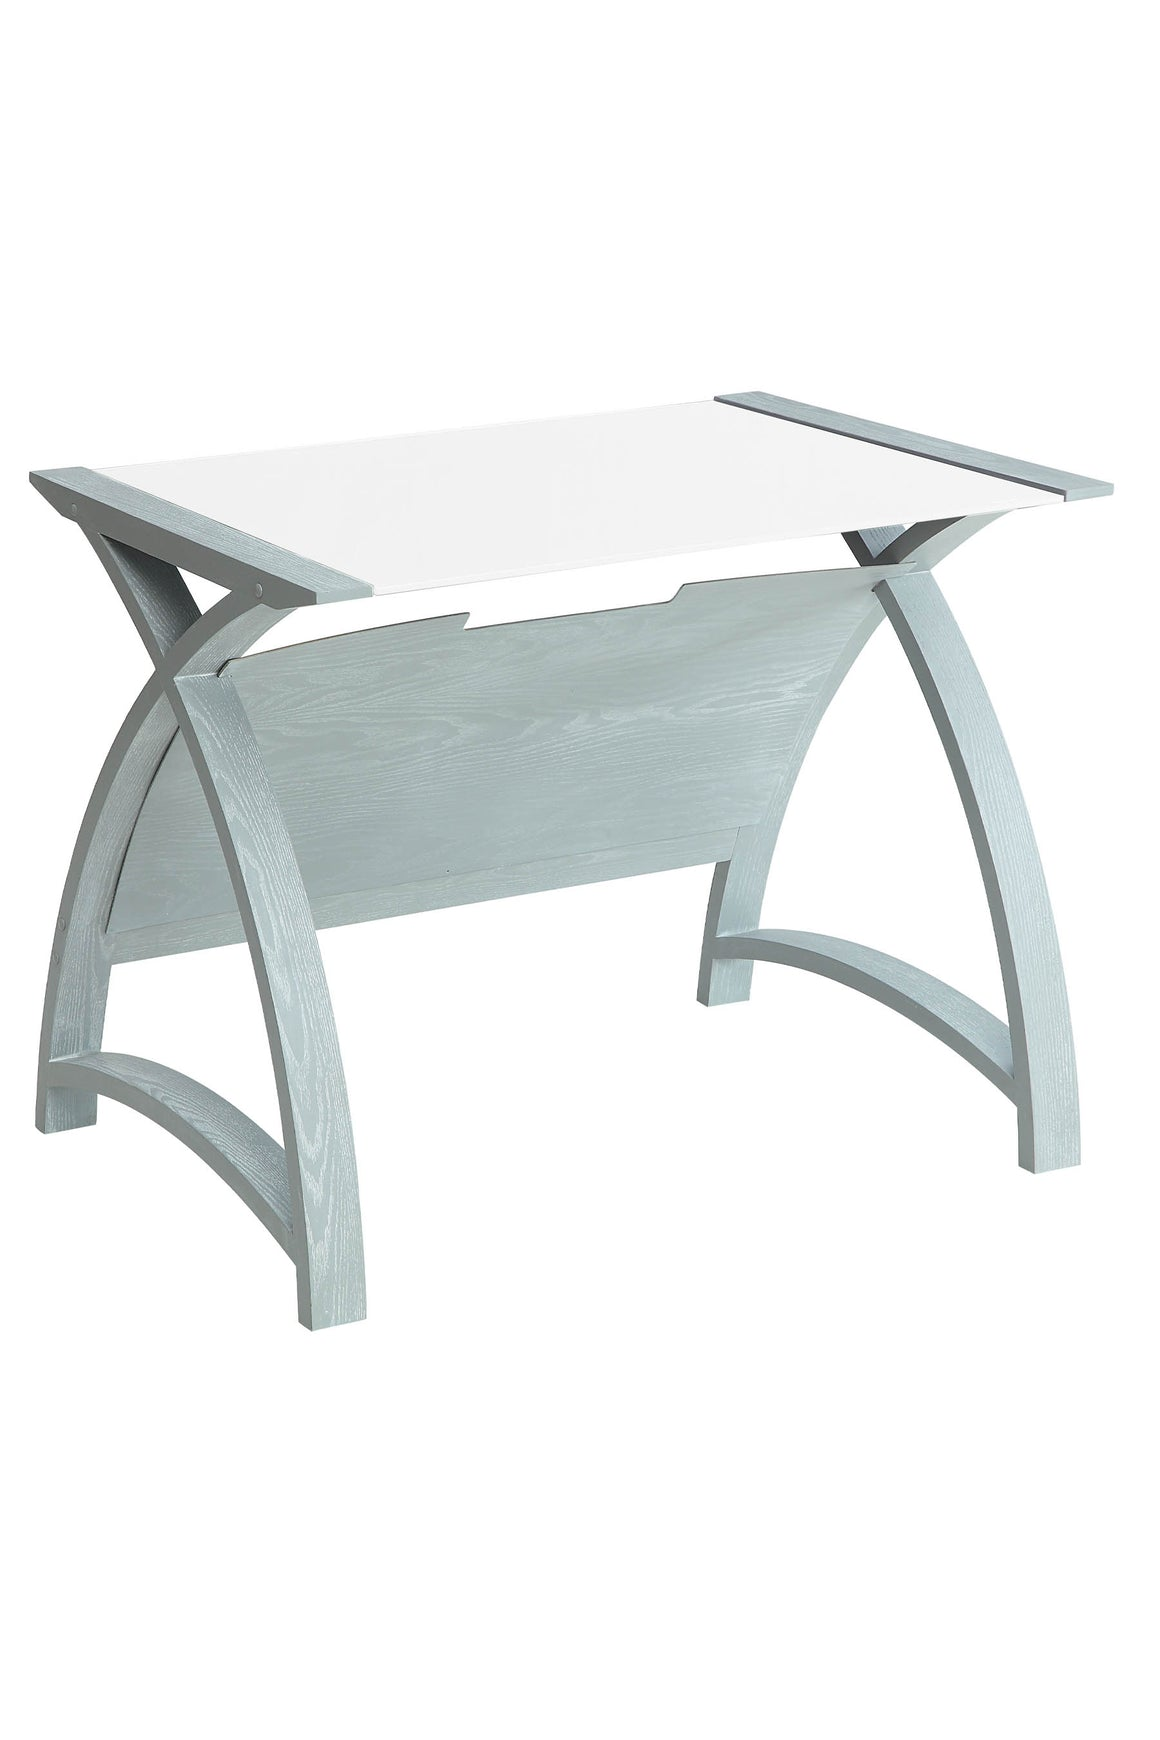 PC201 Helsinki 1300 Table (Grey) - PRE-ORDER FOR DELIVERY W/C 7/9/2020